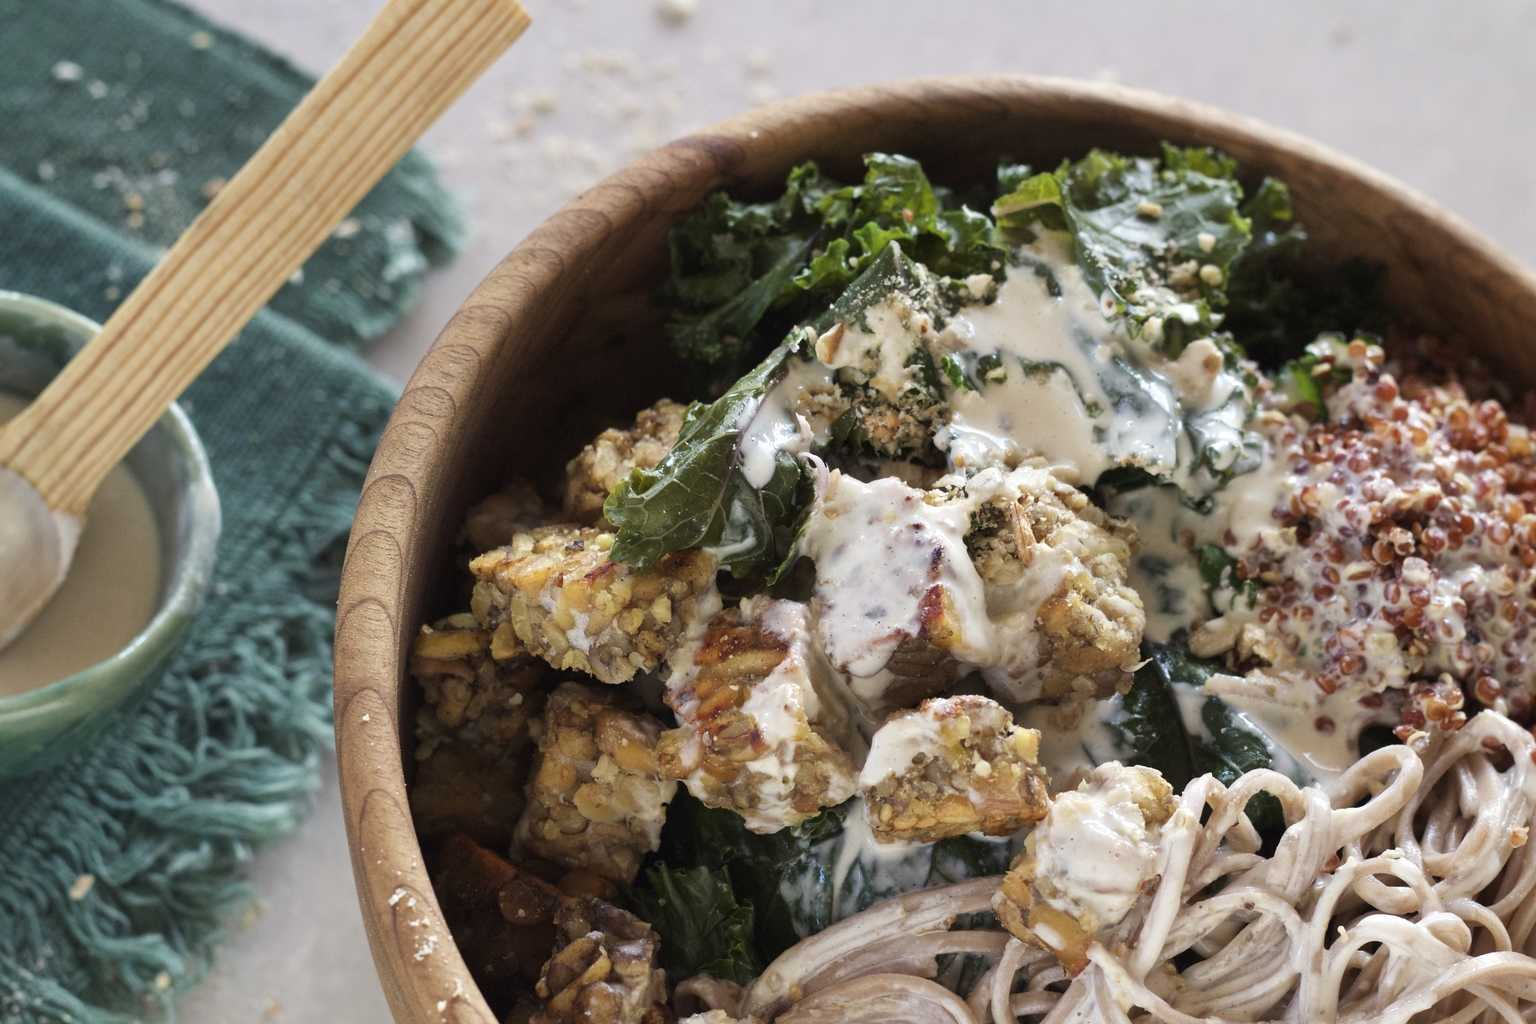 Soba Noodle and Kale Bowl with Tahini Sauce drizzled on top